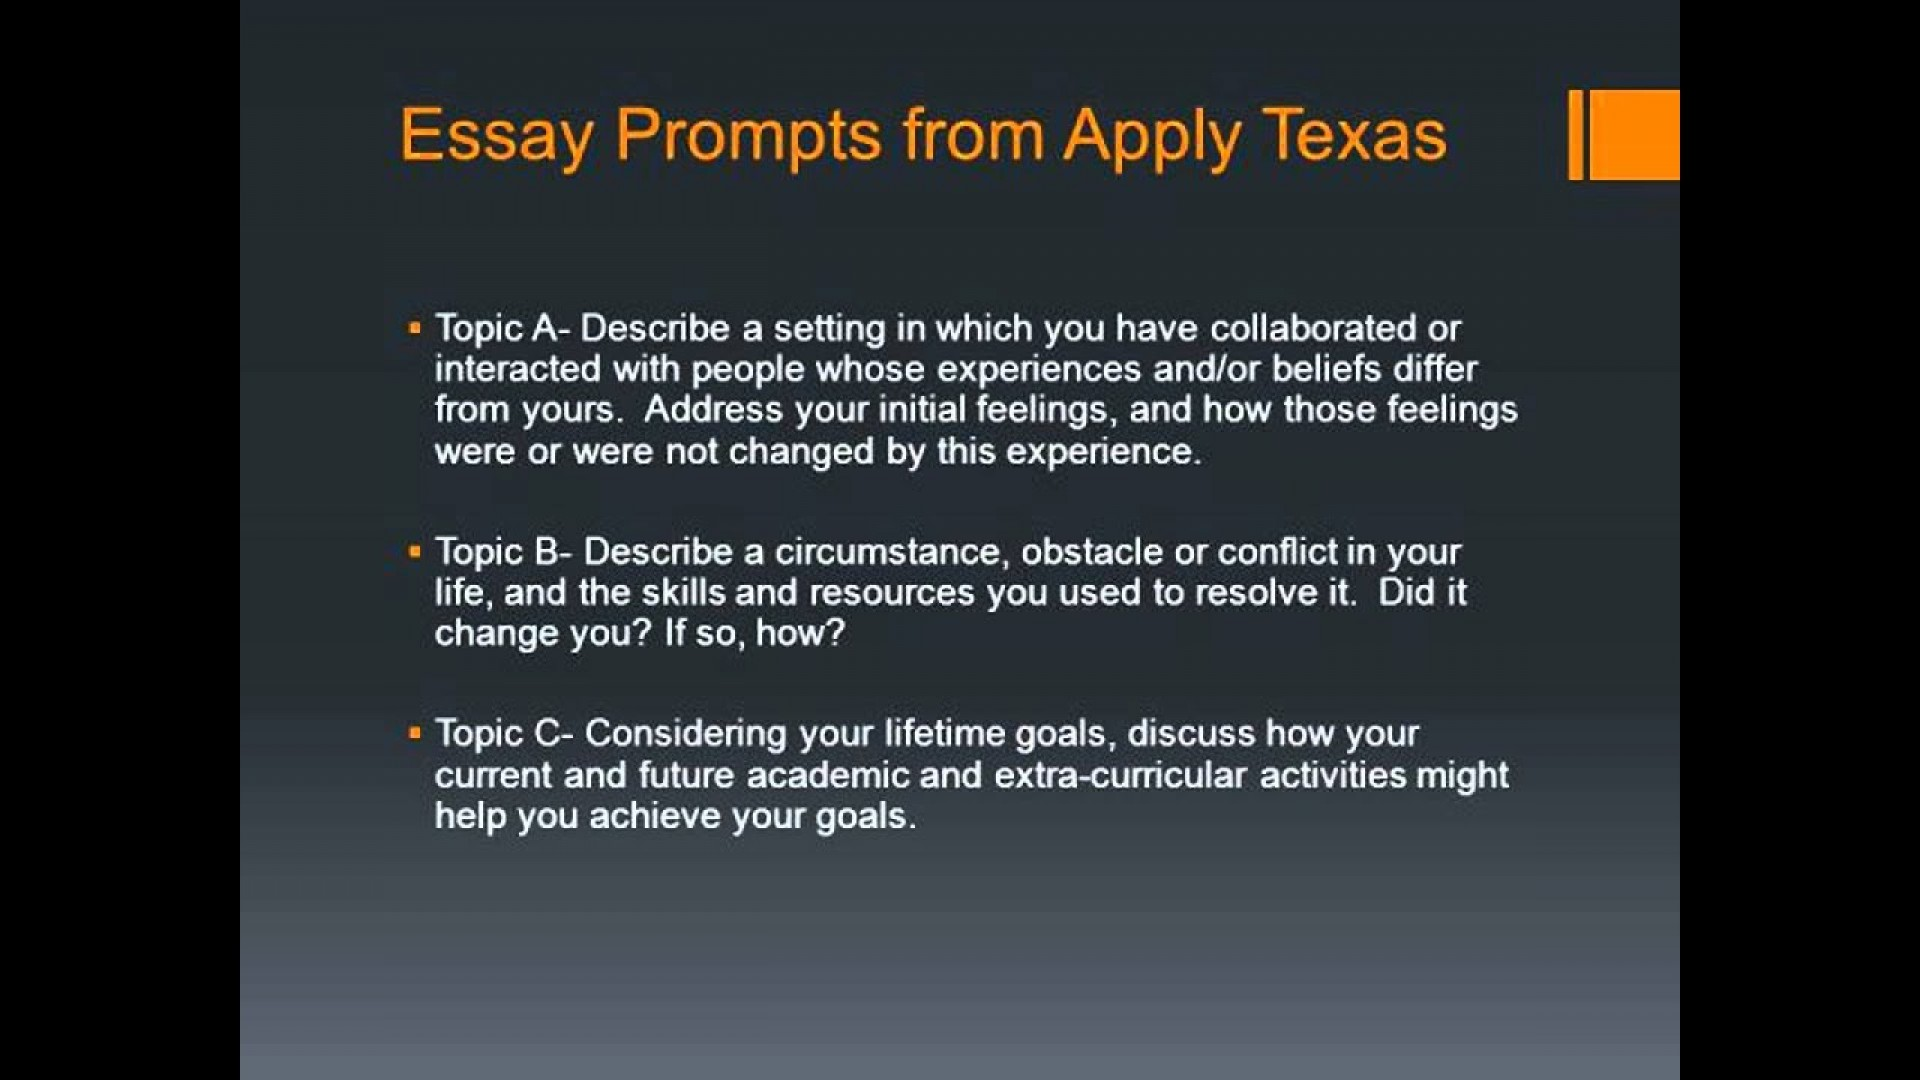 005 Maxresdefault Essay Example Apply Texas Top Essays 2019 That Worked Word Limit 1920